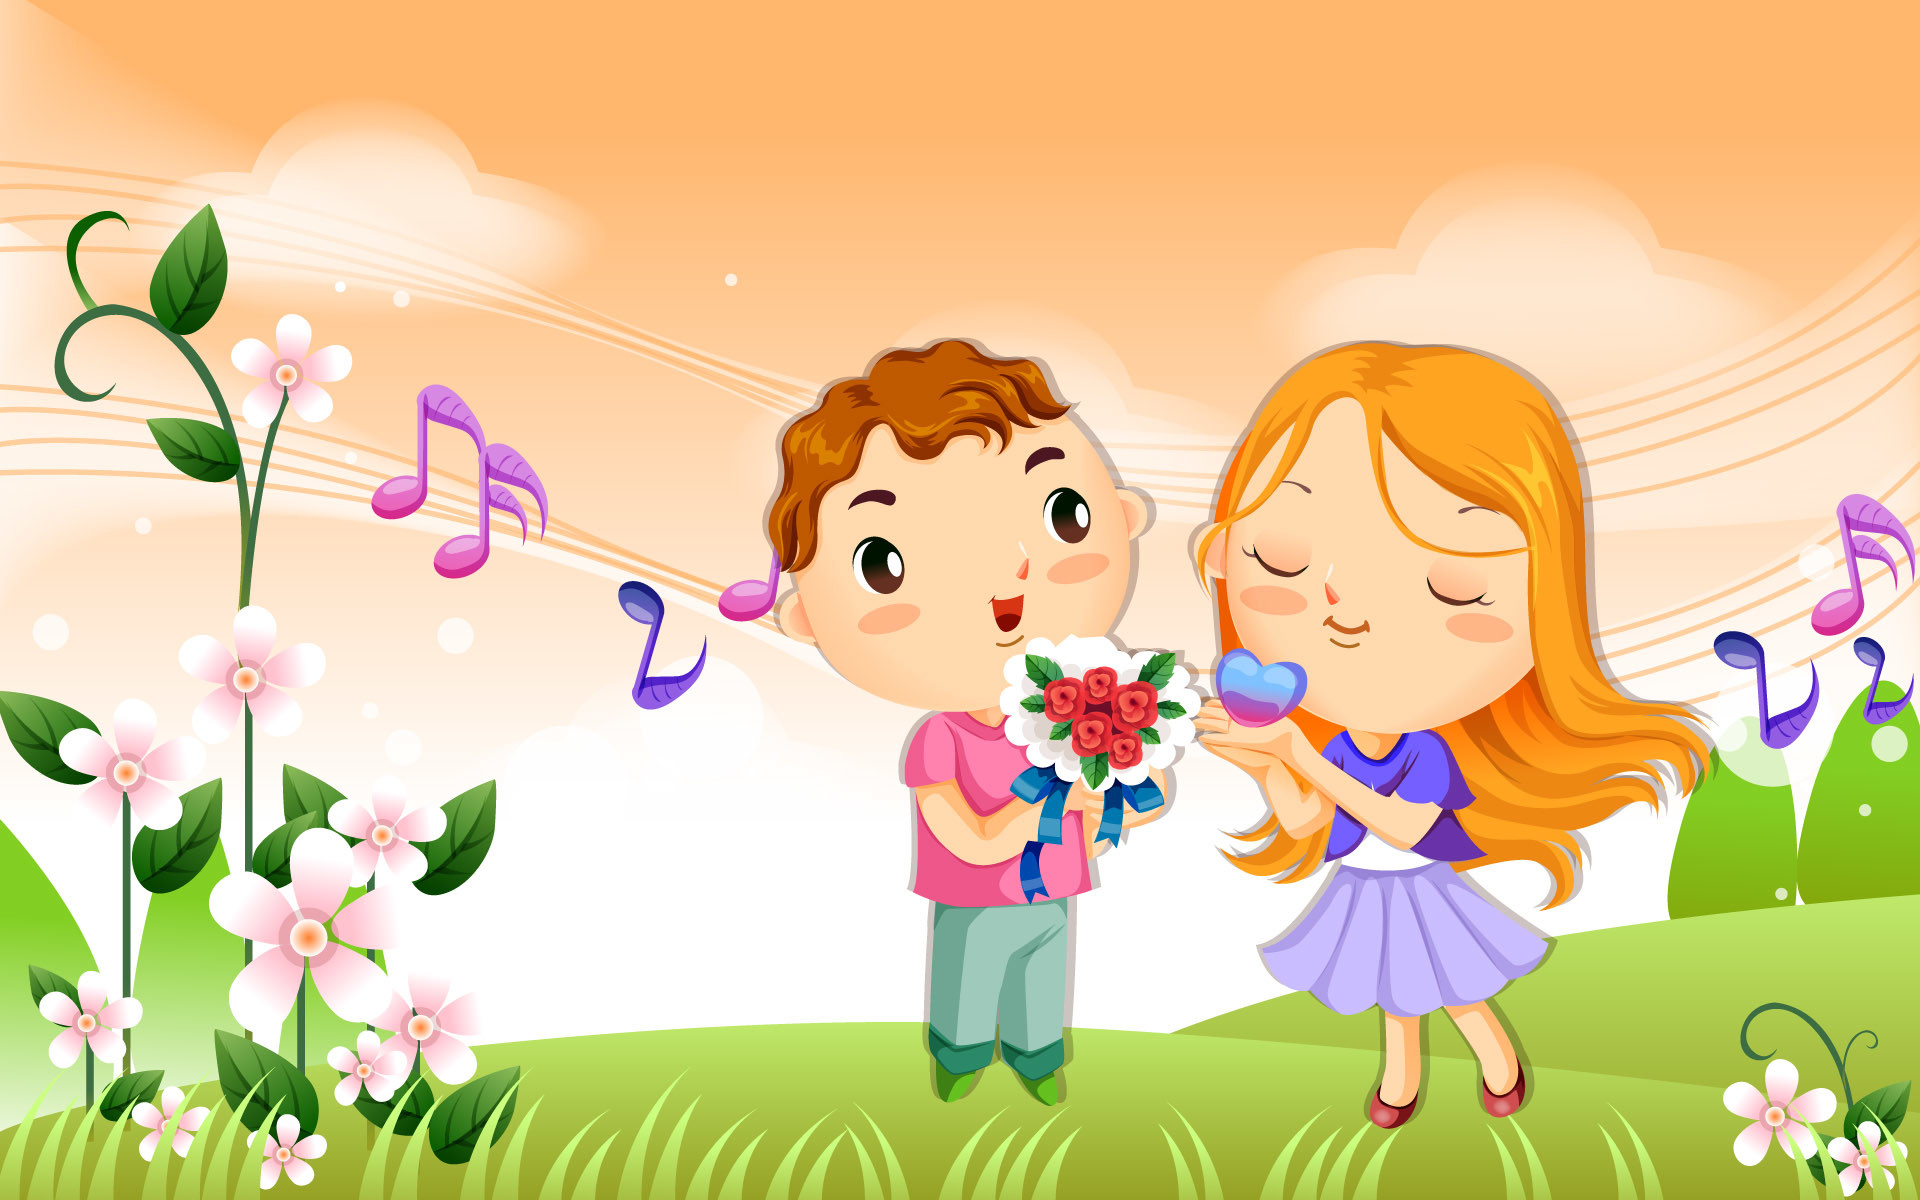 1920x1200 Cute Cartoon Couple Wallpaper | Hd Wallpapers Download